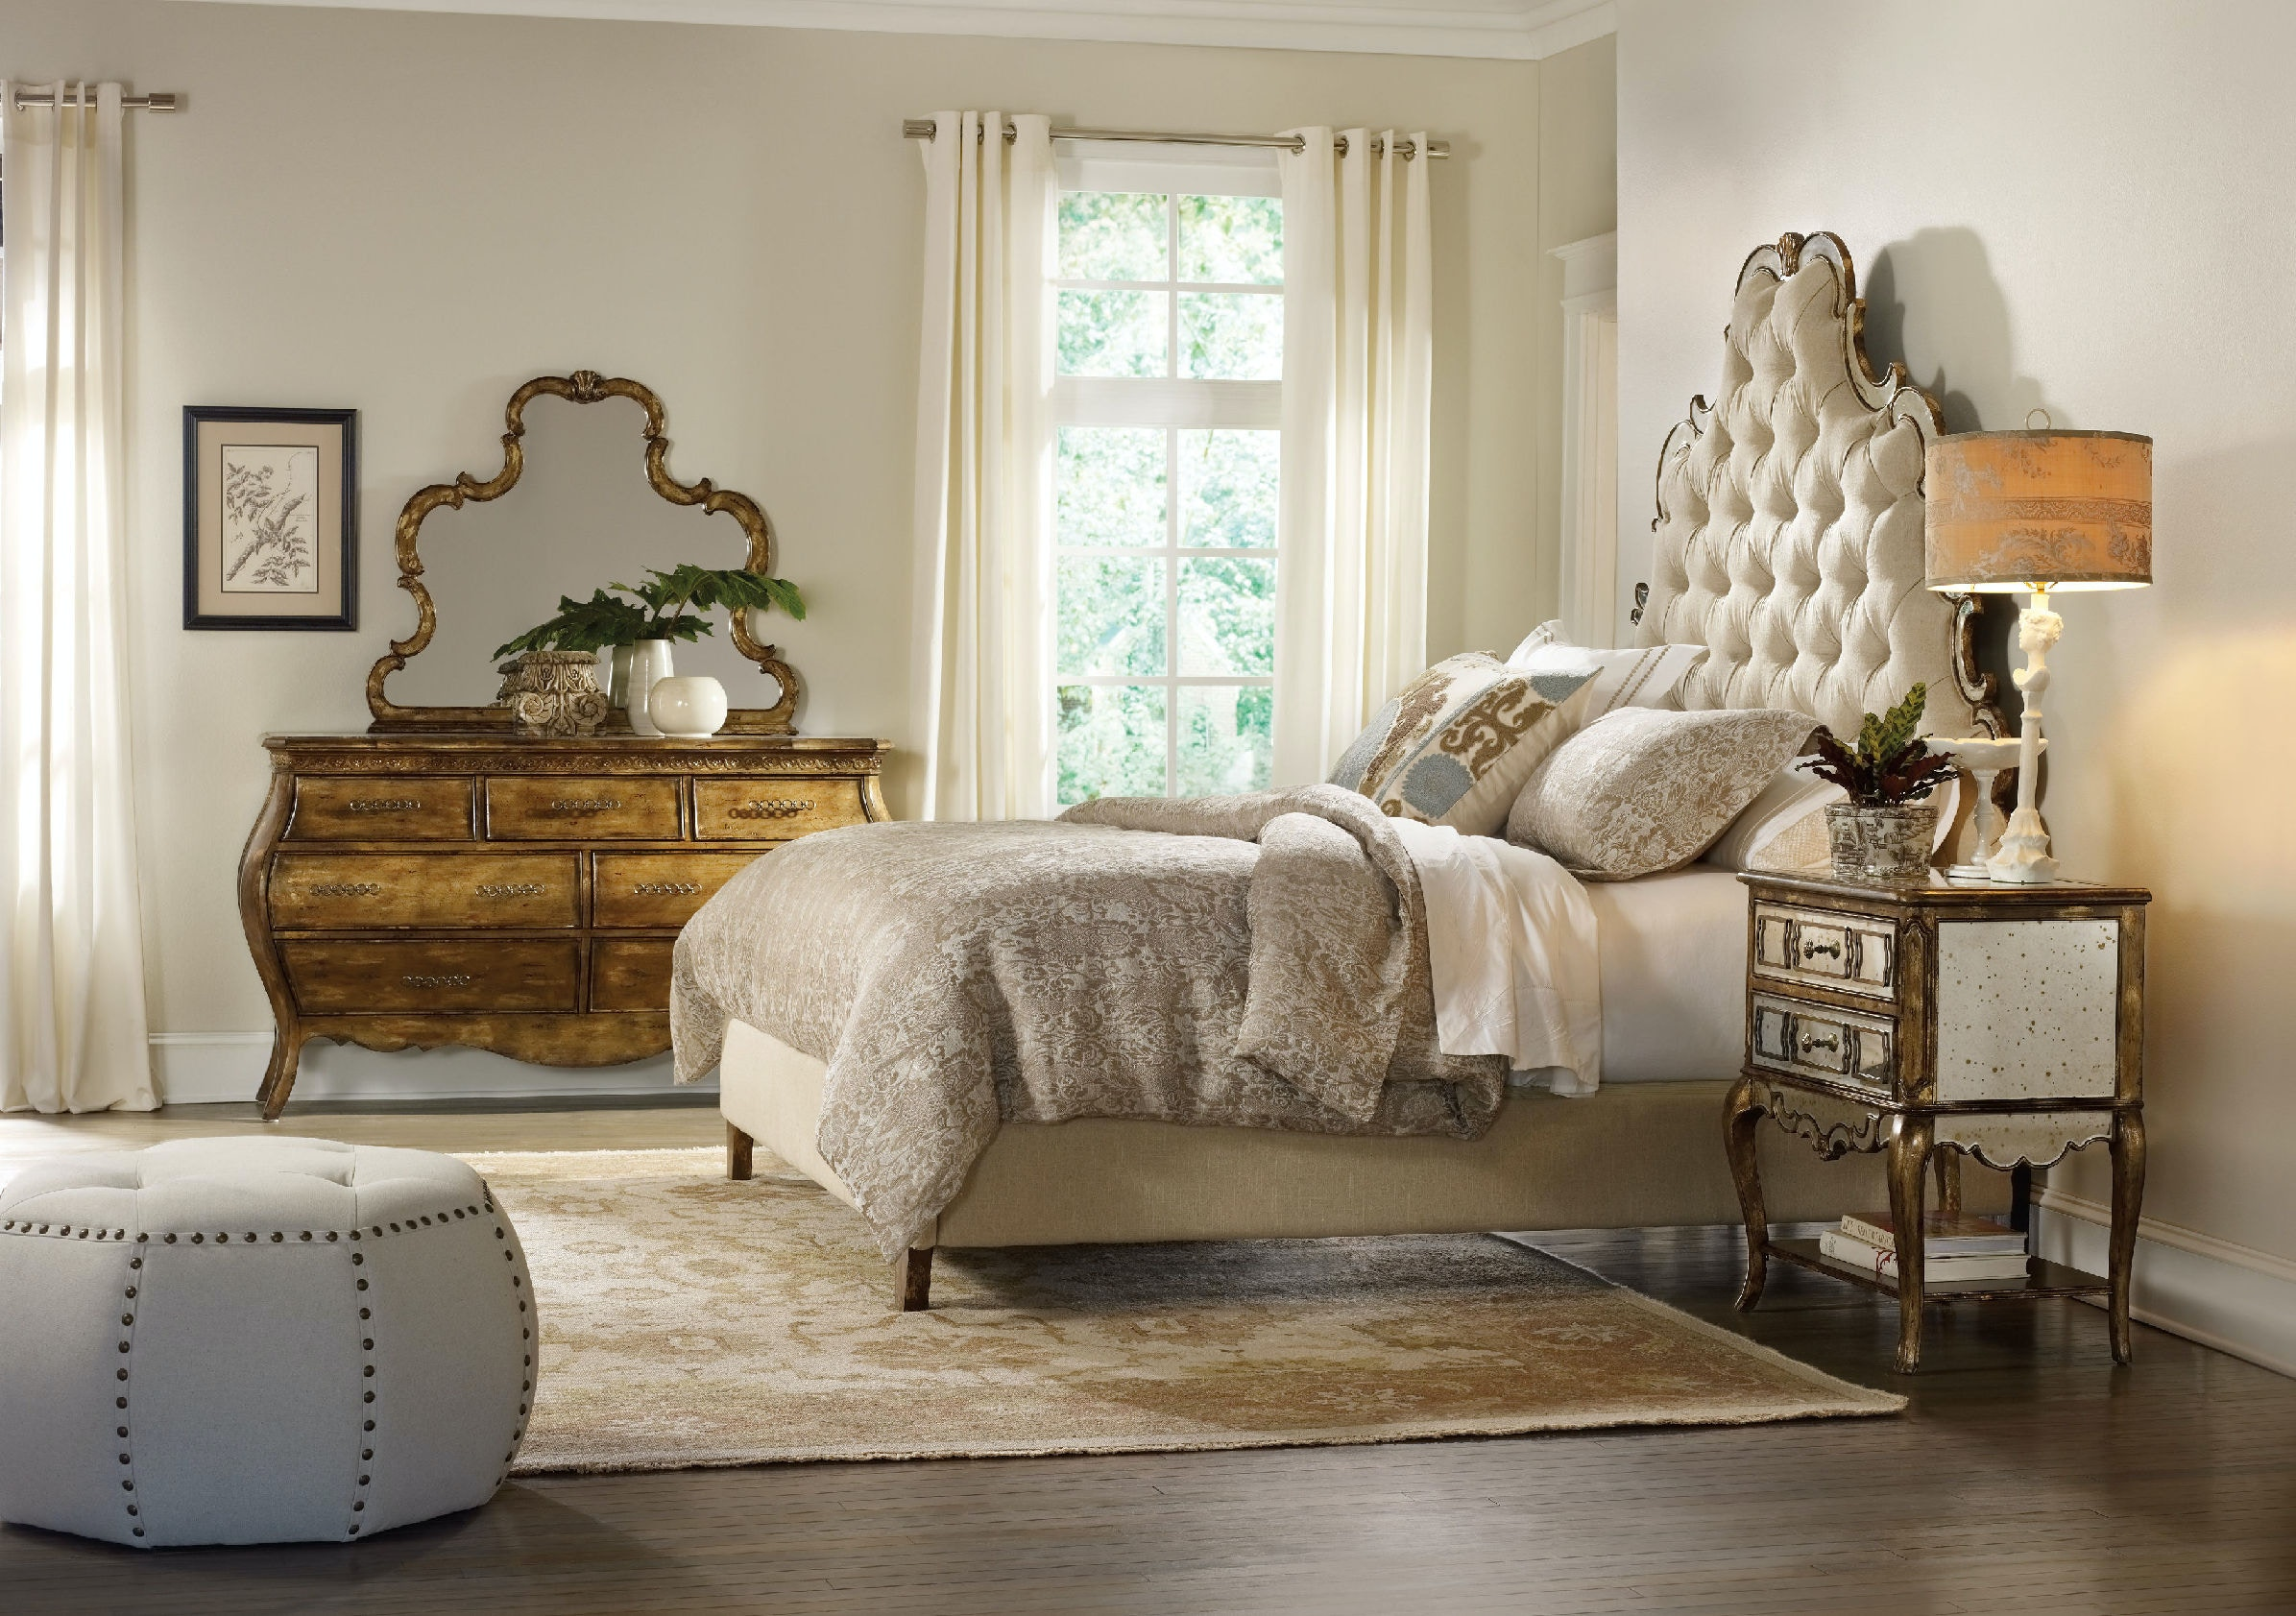 Hooker Furniture Bedroom Sanctuary King Tufted Bed - Bling 3016-90865